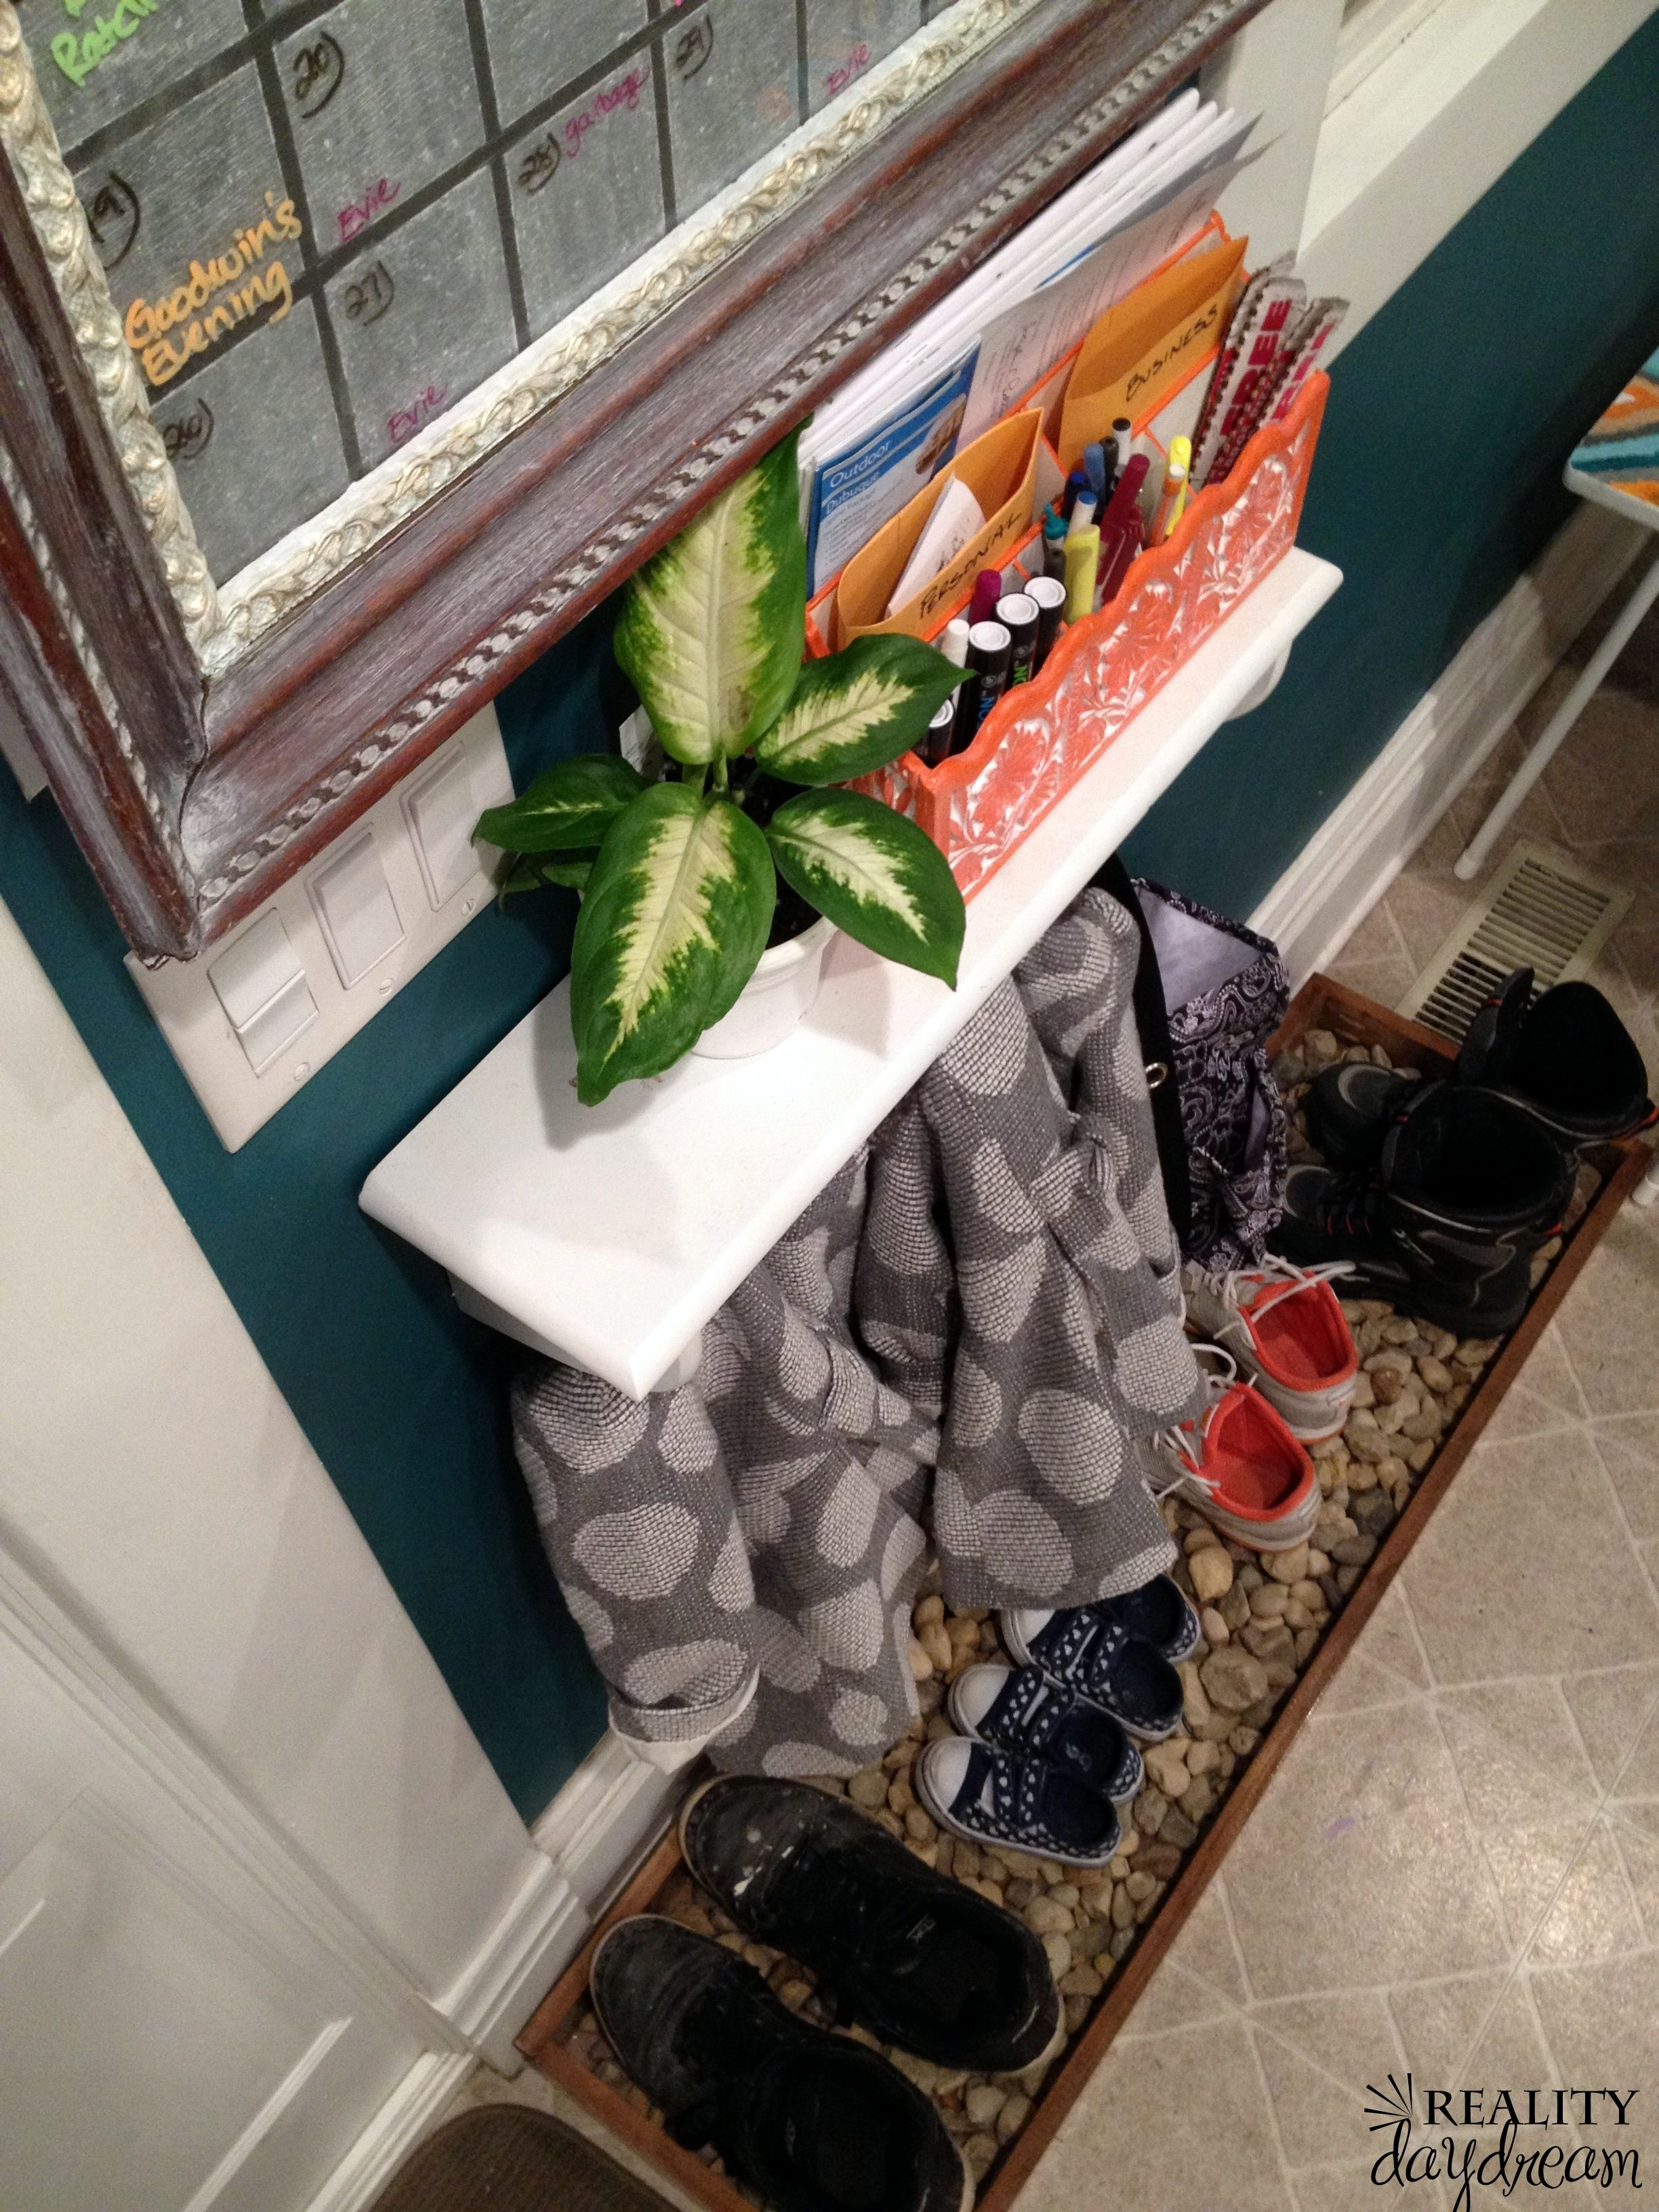 Diy Drip Tray For Wet And Muddy Shoes Reality Day Dream Fabulous Diy Diy Entryway Shoe Organizer